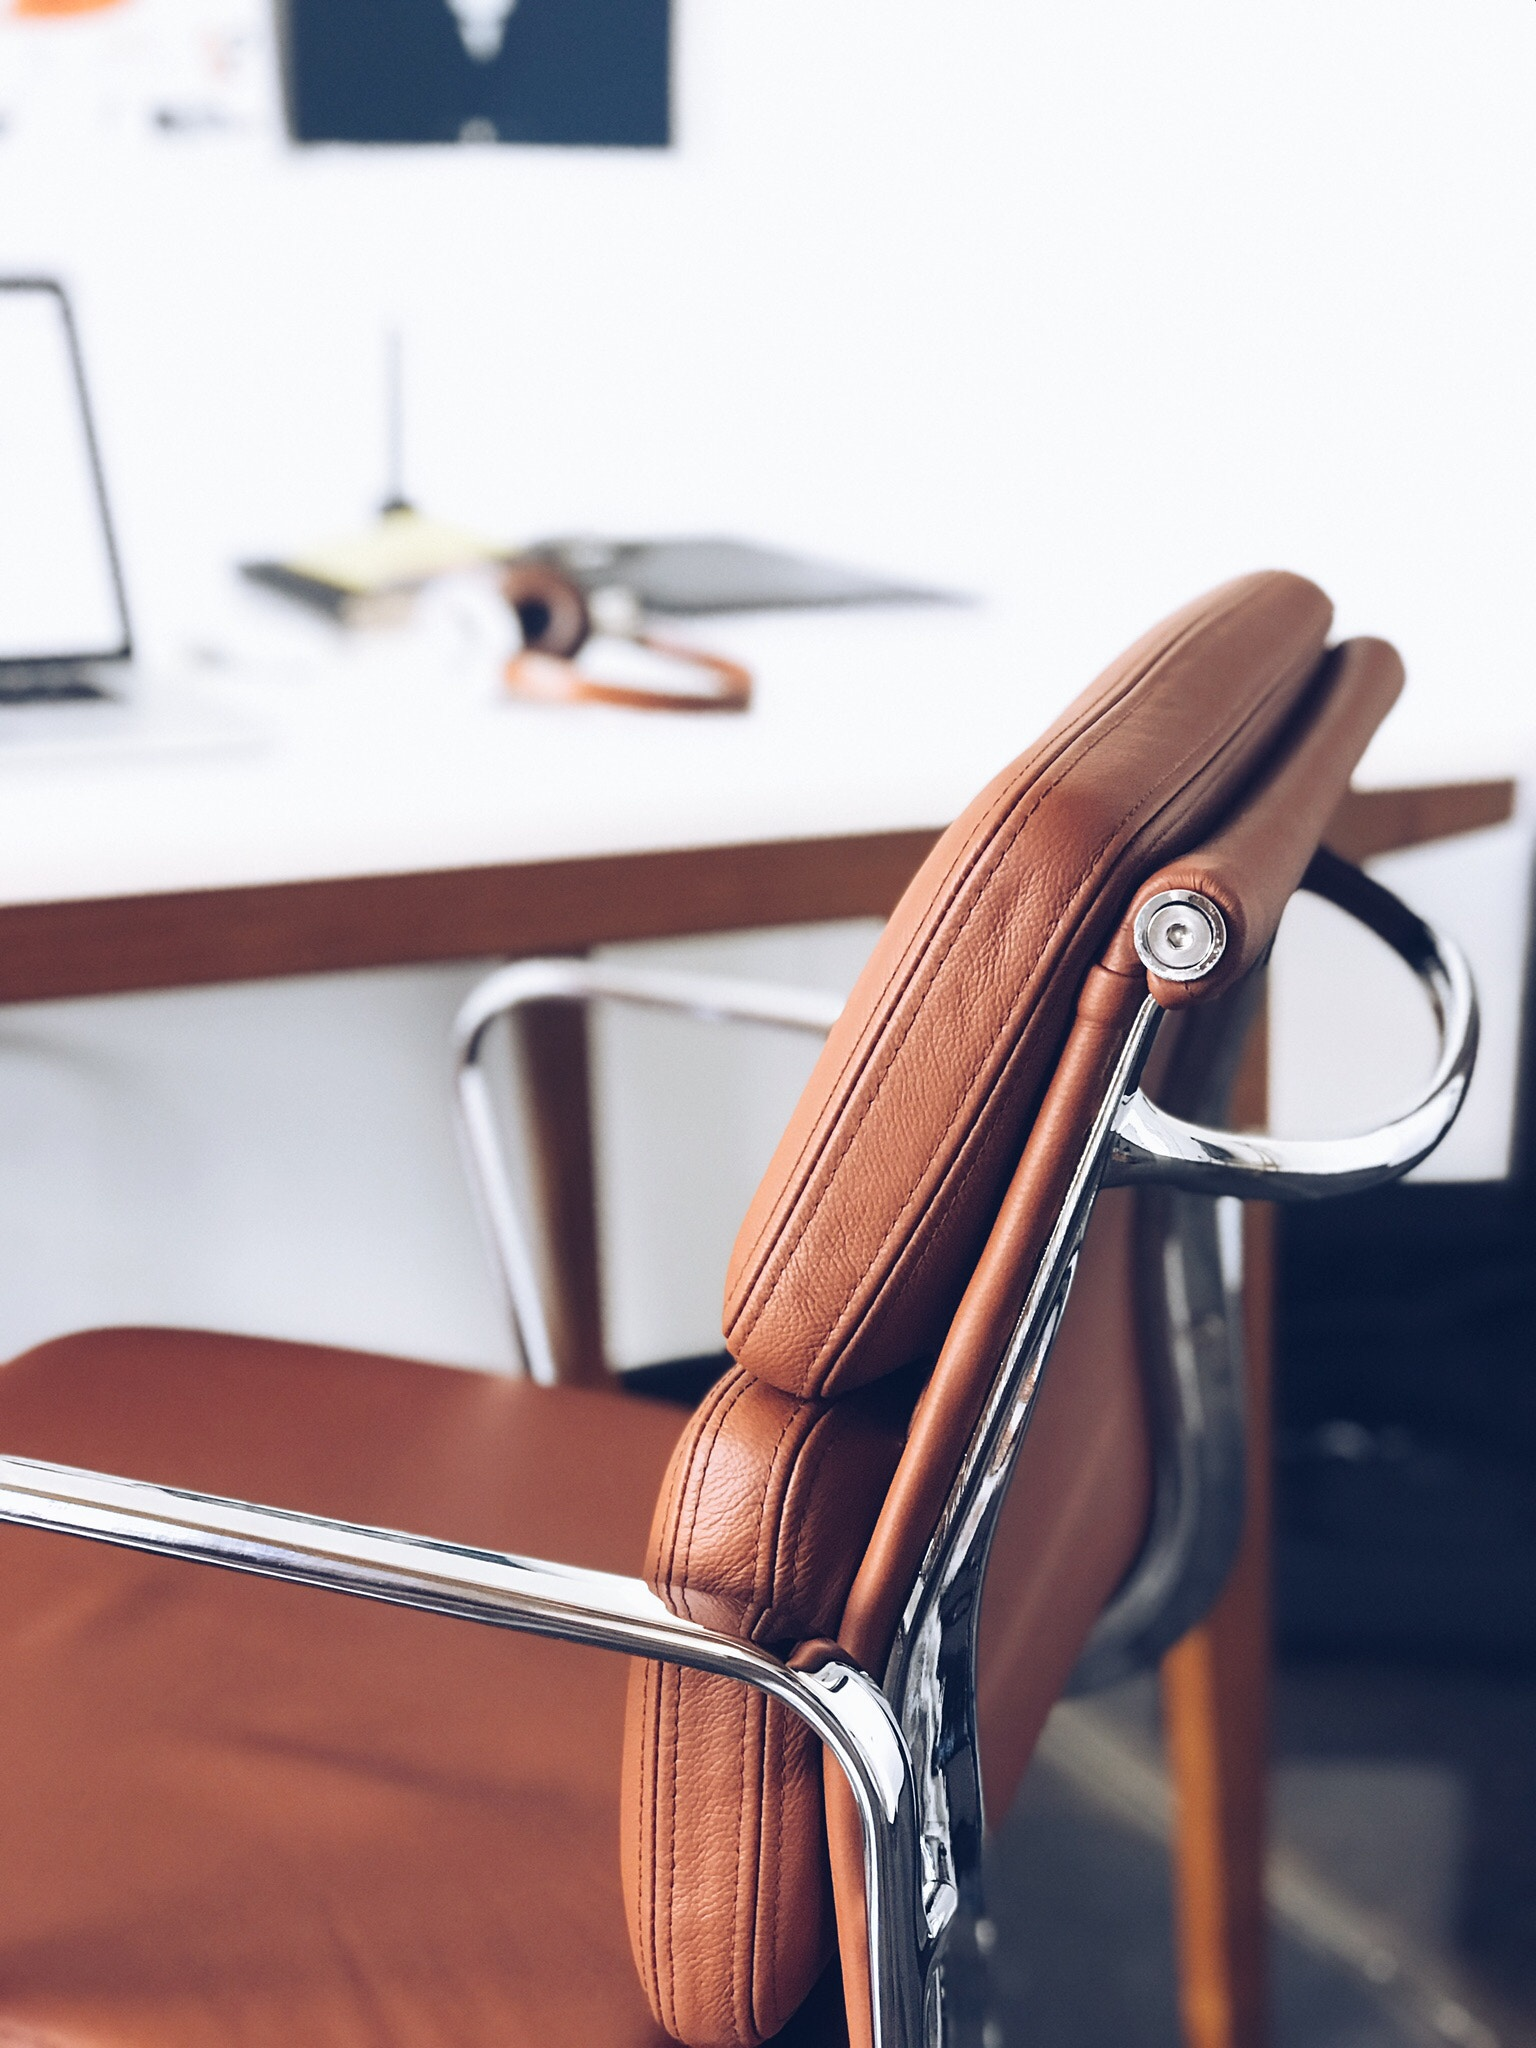 Four Ways Ergonomic Furniture Can Increase Productivity